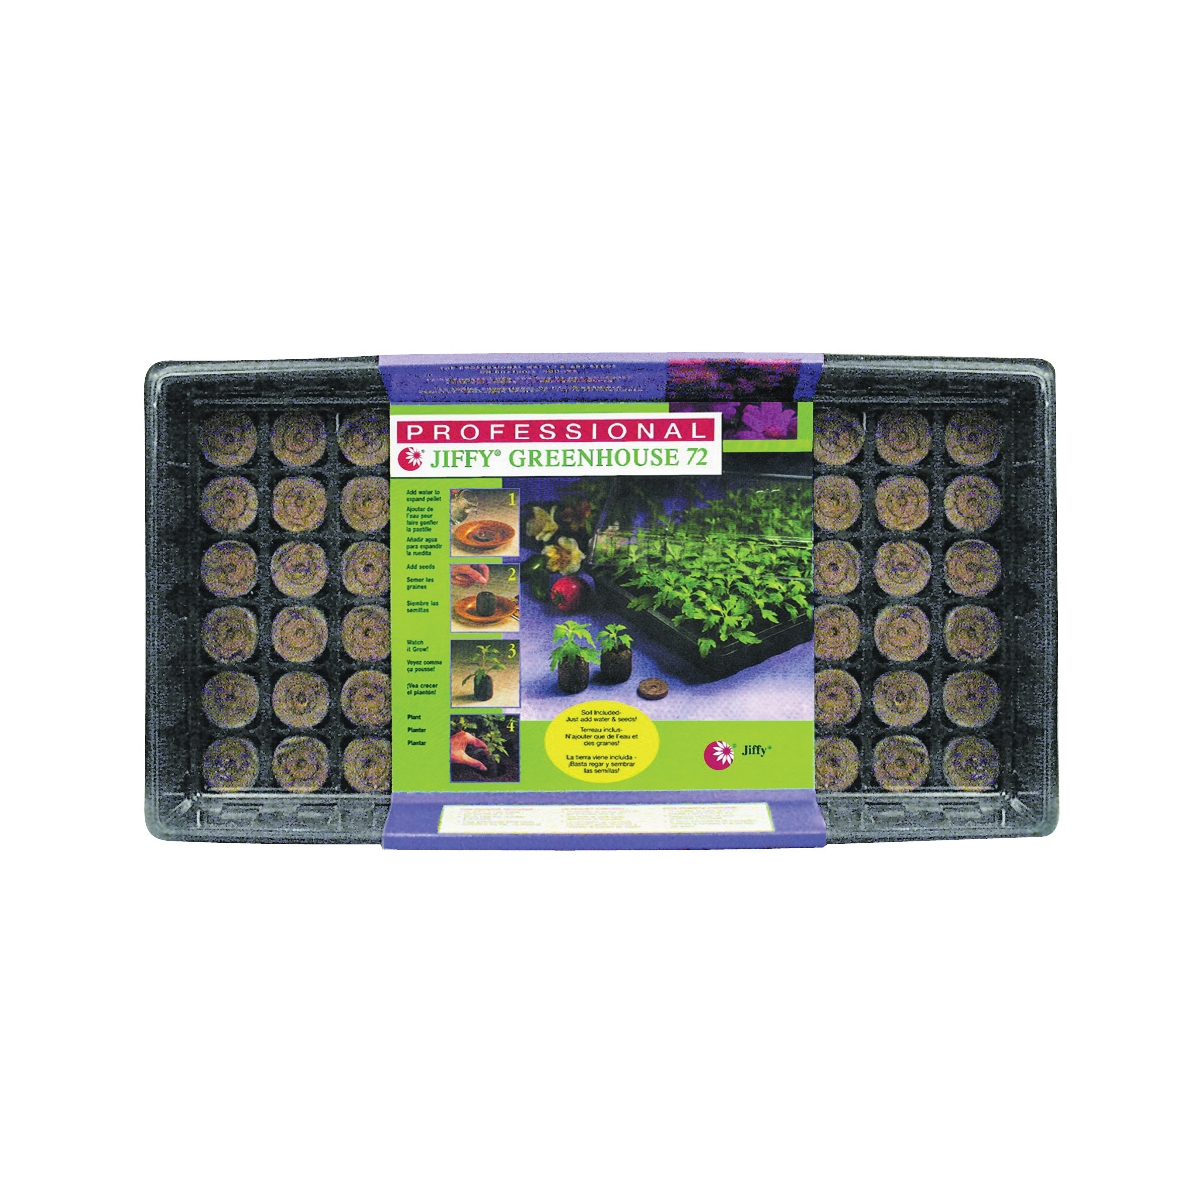 Picture of Jiffy J372 Seed Starting Kit, Sphagnum Peat Moss, Black